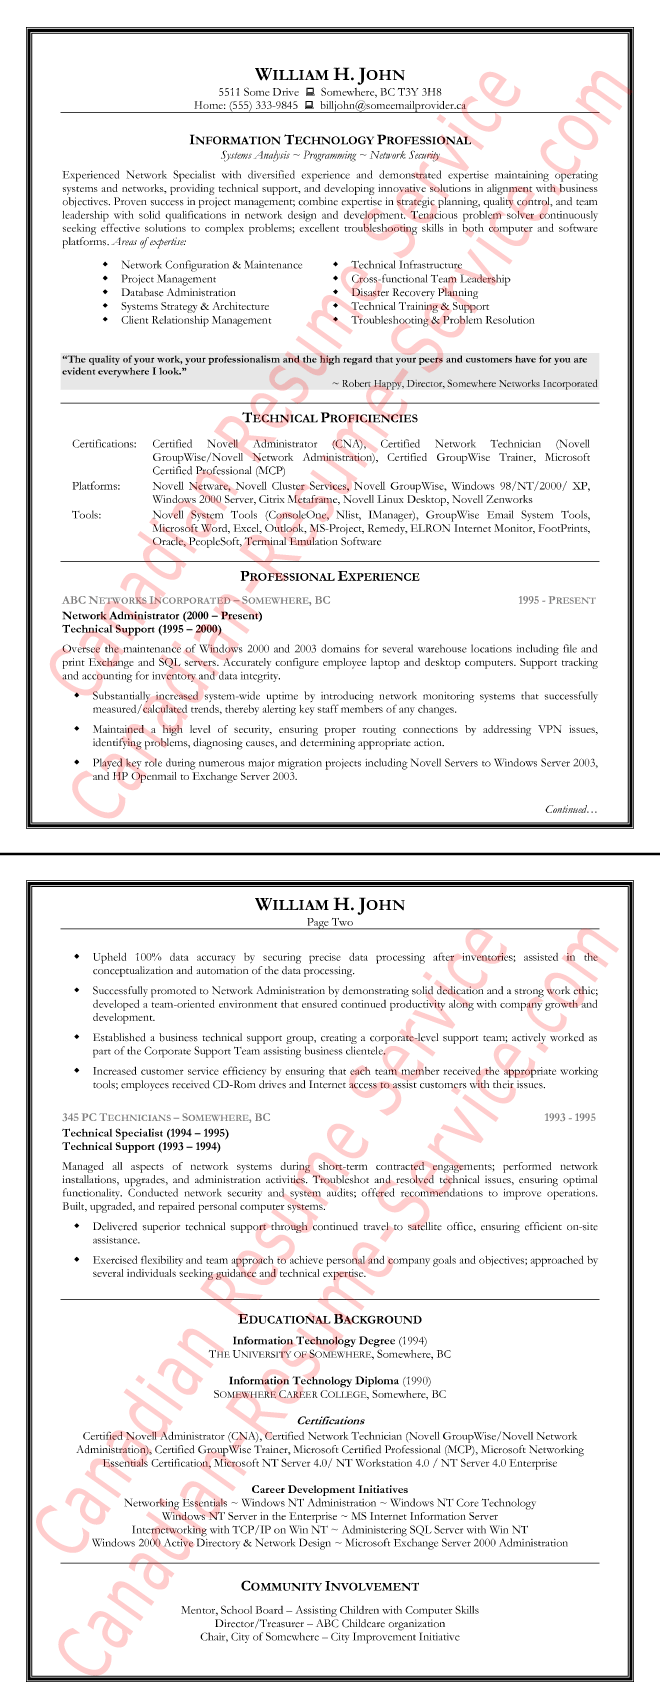 Information Technology Resume Sample Network Technical Expertise